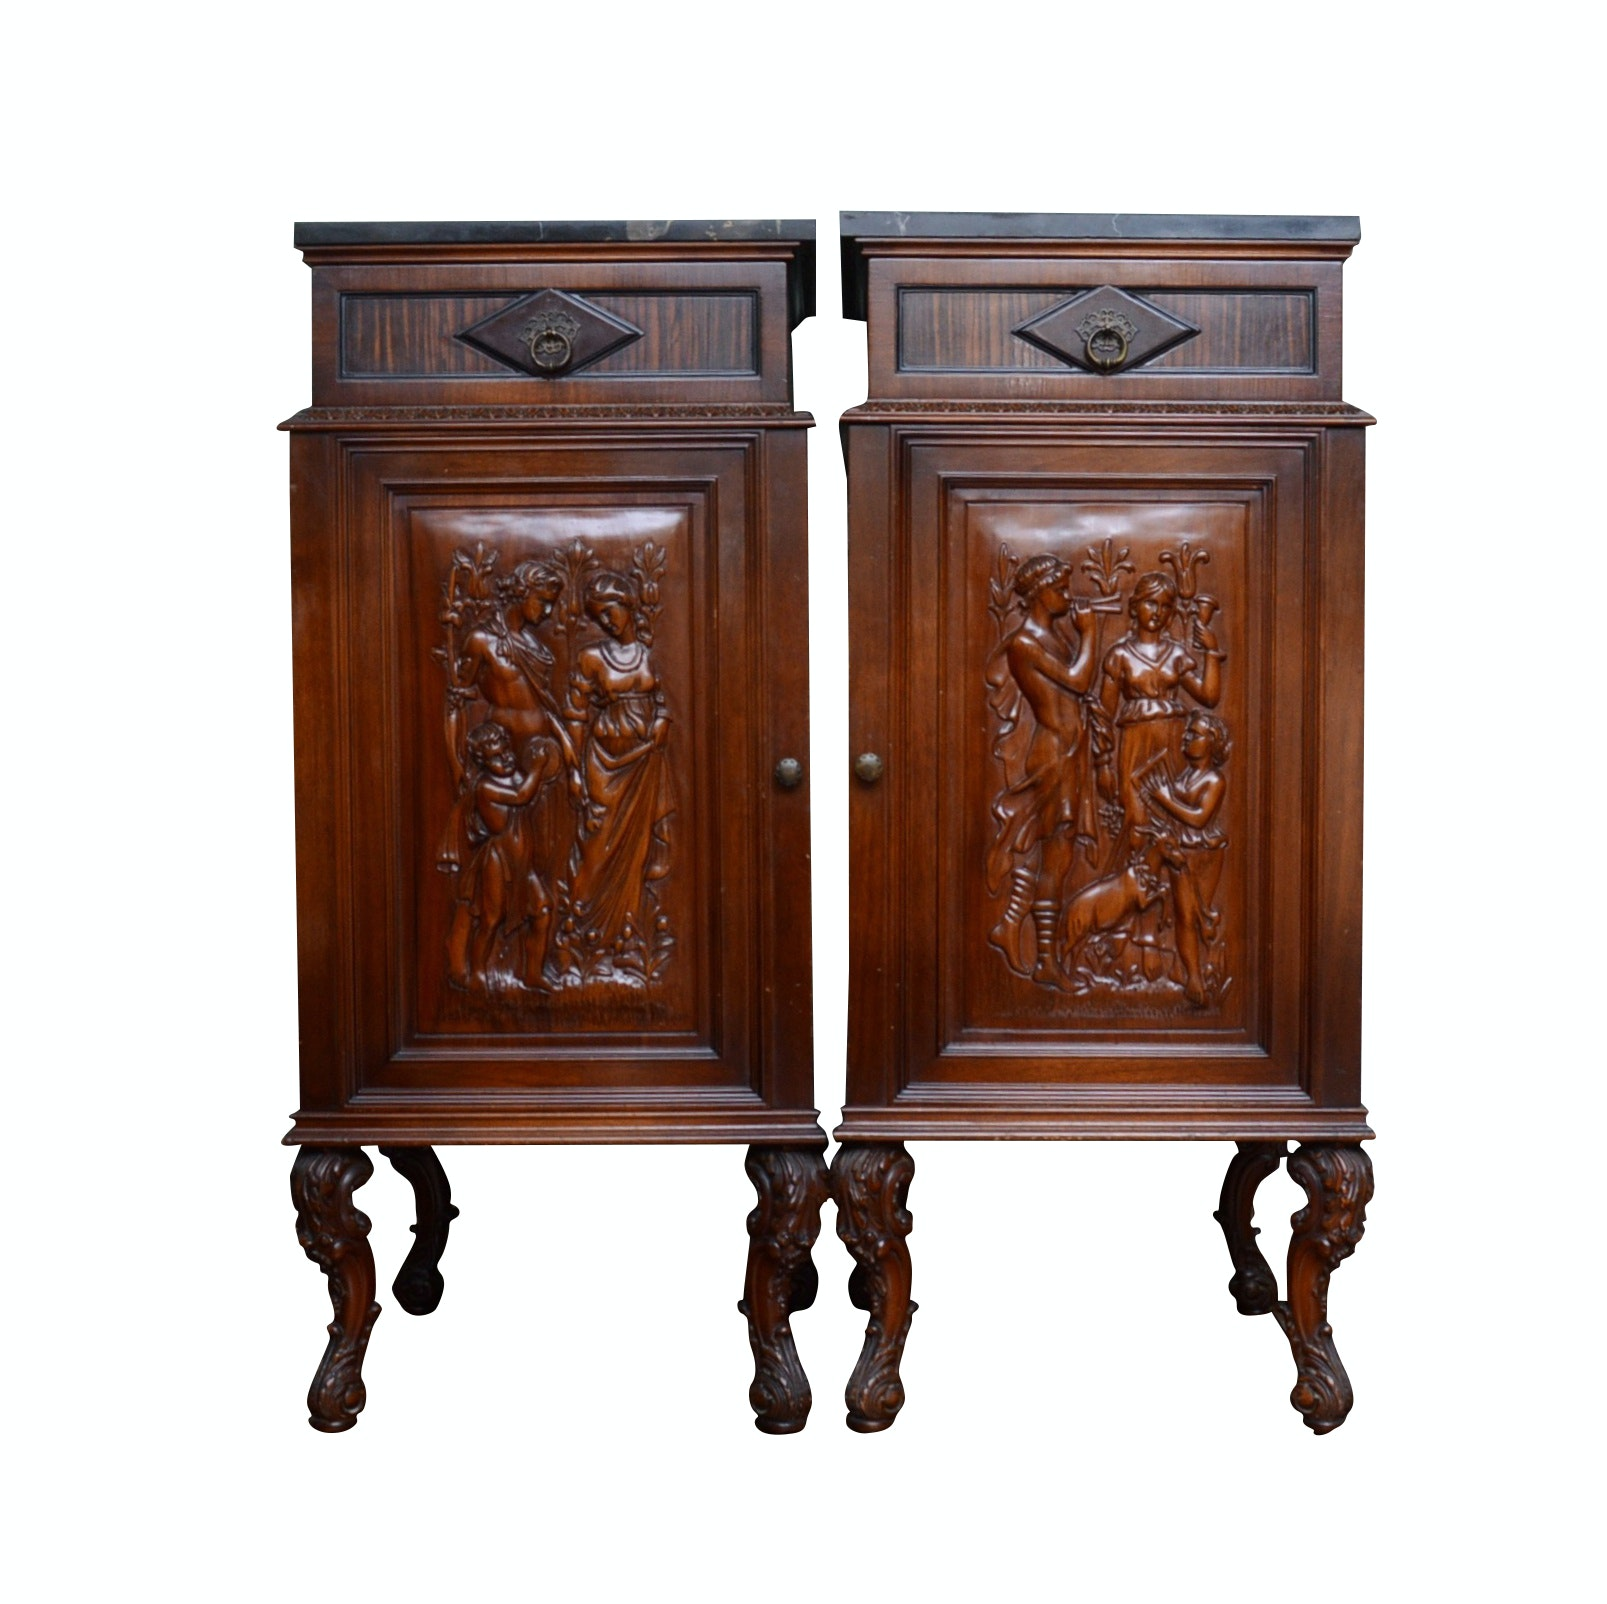 Pair of Renaissance Revival Carved Oak Cabinets with Marble Tops, Circa 1920